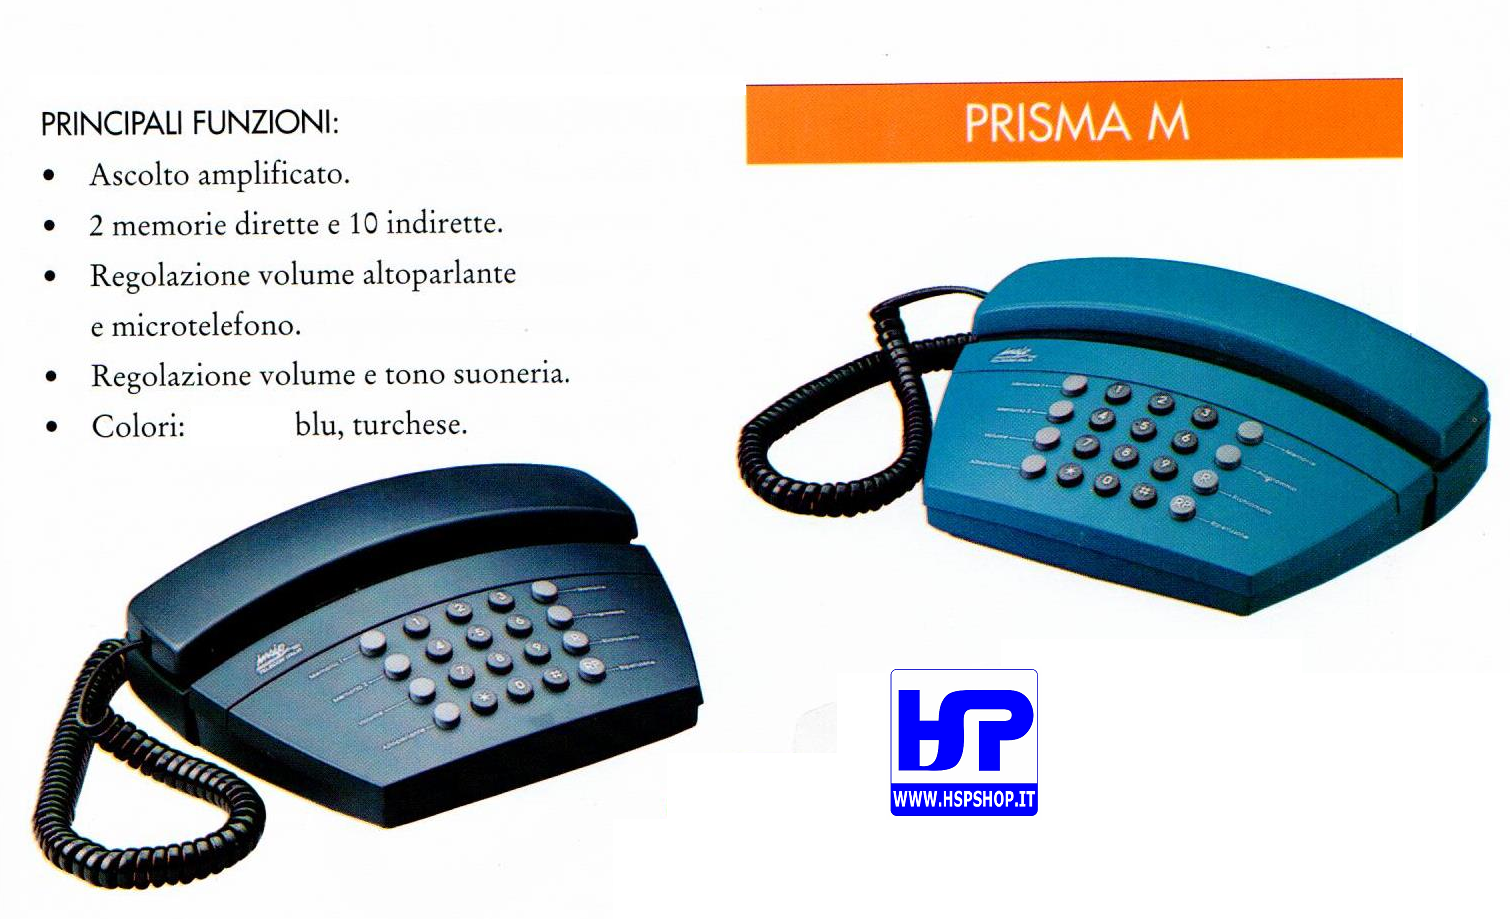 INSIP - PRISMA M - MULTI-FUNCTIONS TELEPHONE